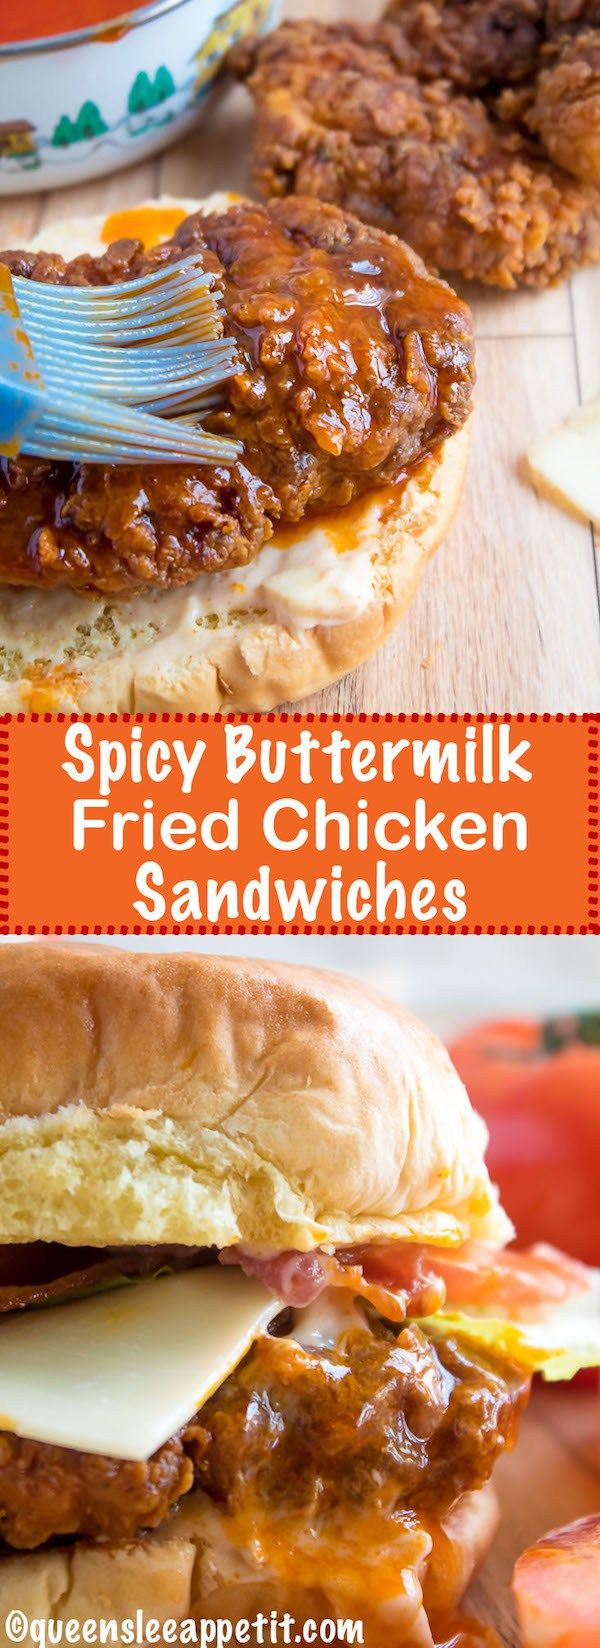 These Spicy Fried Chicken Sandwiches are crispy, juicy and seasoned to perfection. Sandwiched between toasted brioche buns, fresh lettuce, tomatoes, mozzarella, crispy bacon and a flavourful spicy aioli — these fried chicken sandwiches are comfort food at its best!